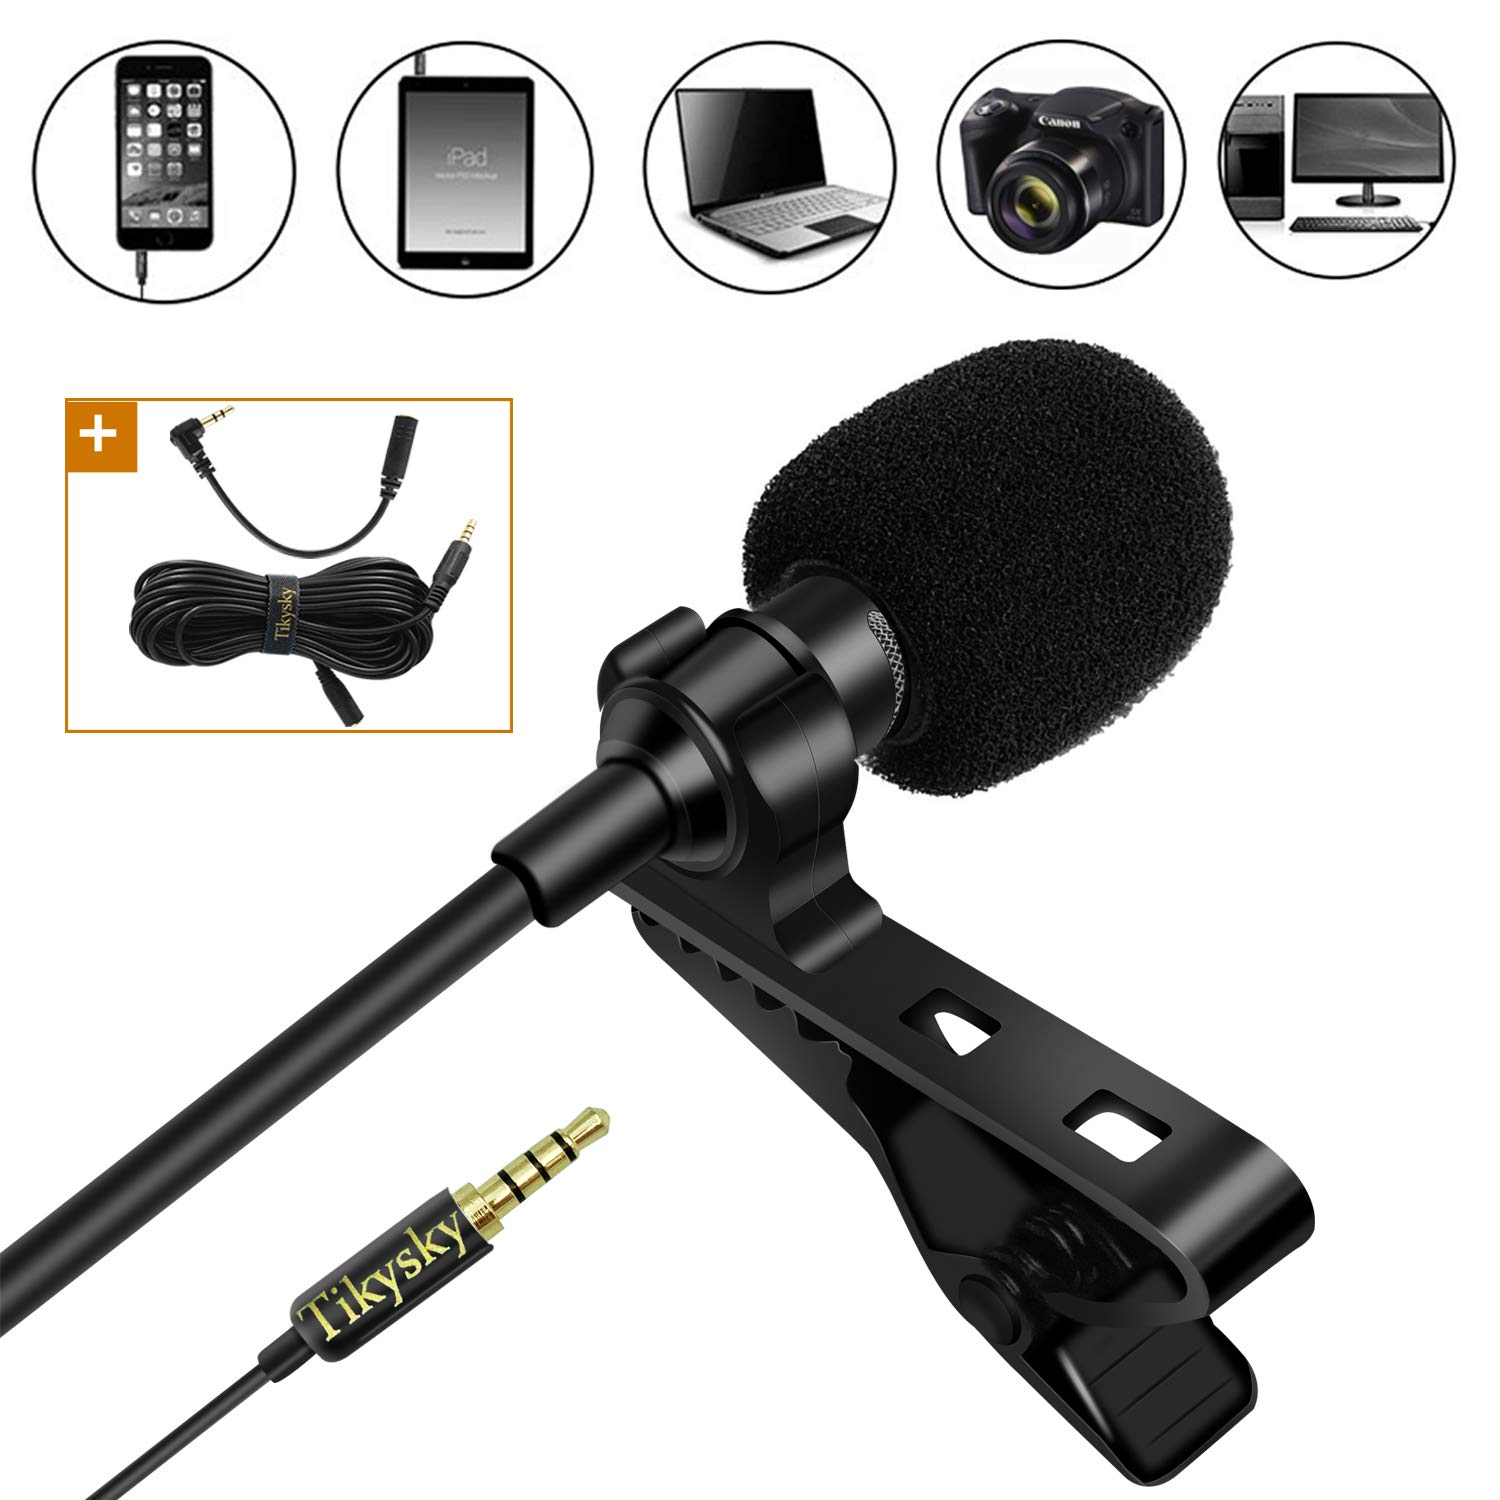 Lavalier Lapel Microphone,Tikysky Clip On Lav Mic for iPhone Android Cell Phone Smartphone Camera Vlog Interview Video Recording Podcast by Tikysky